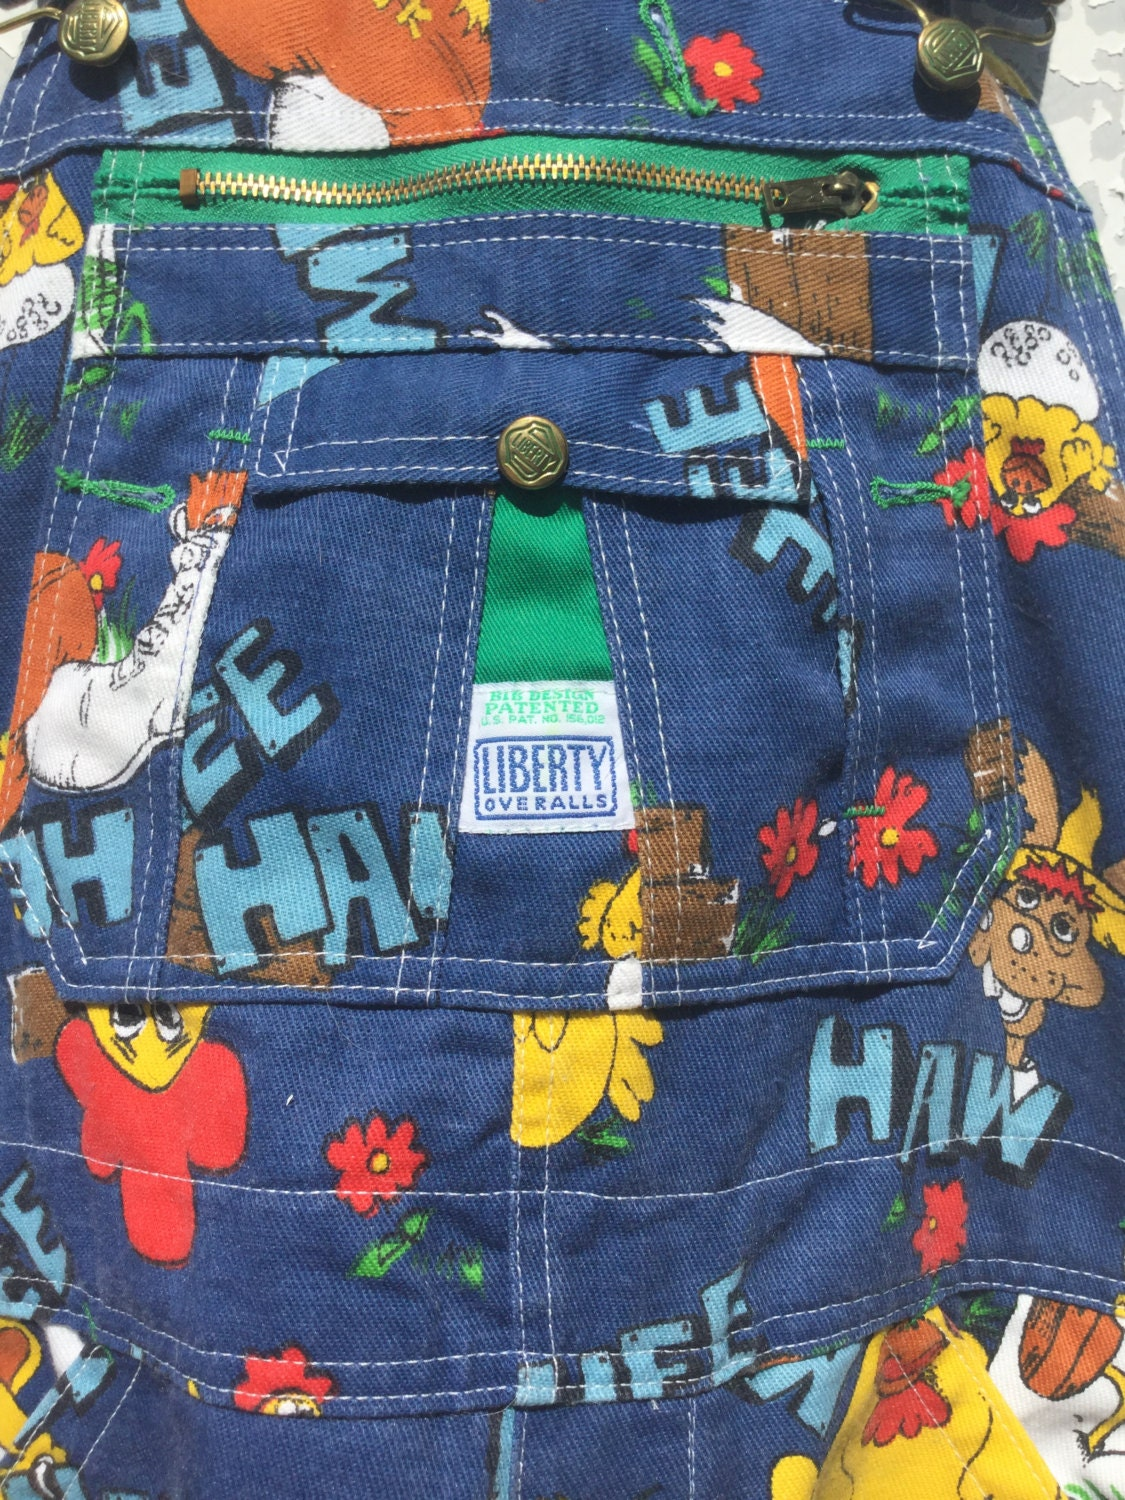 Hee Haw Overalls Adult Size Original Television Series